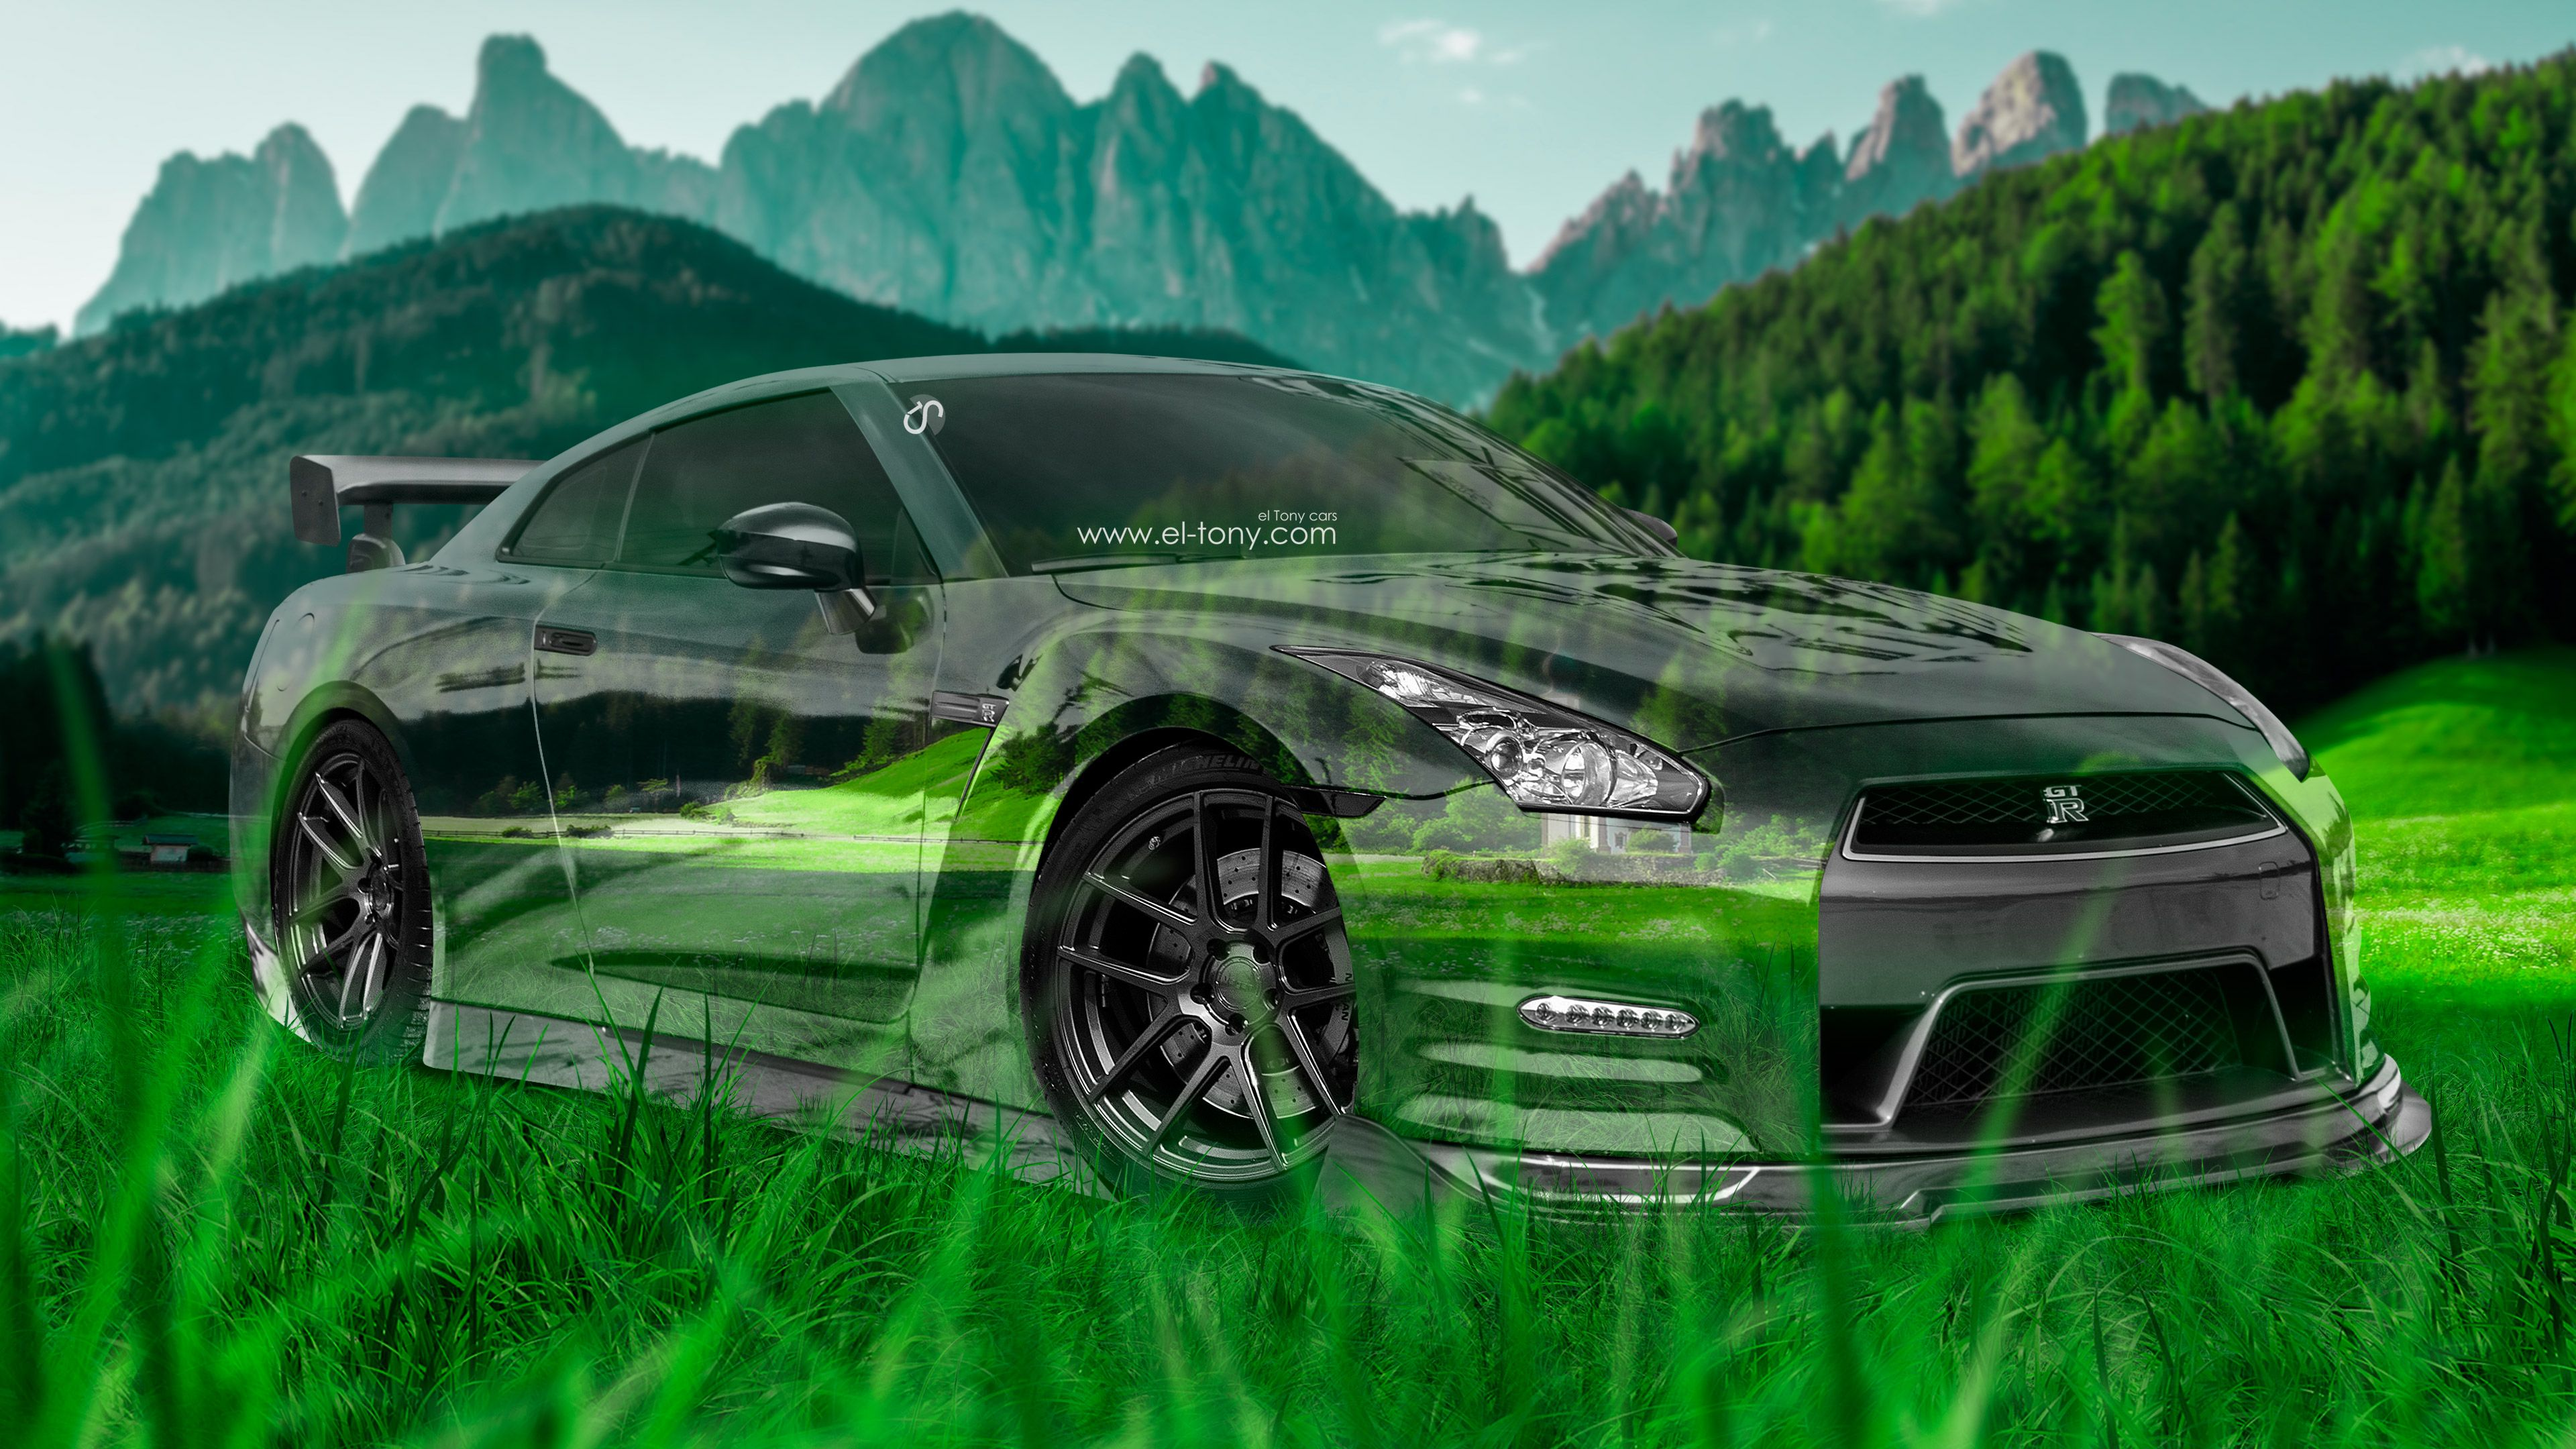 Lovely Nissan GTR R35 JDM 3D Crystal Nature Car